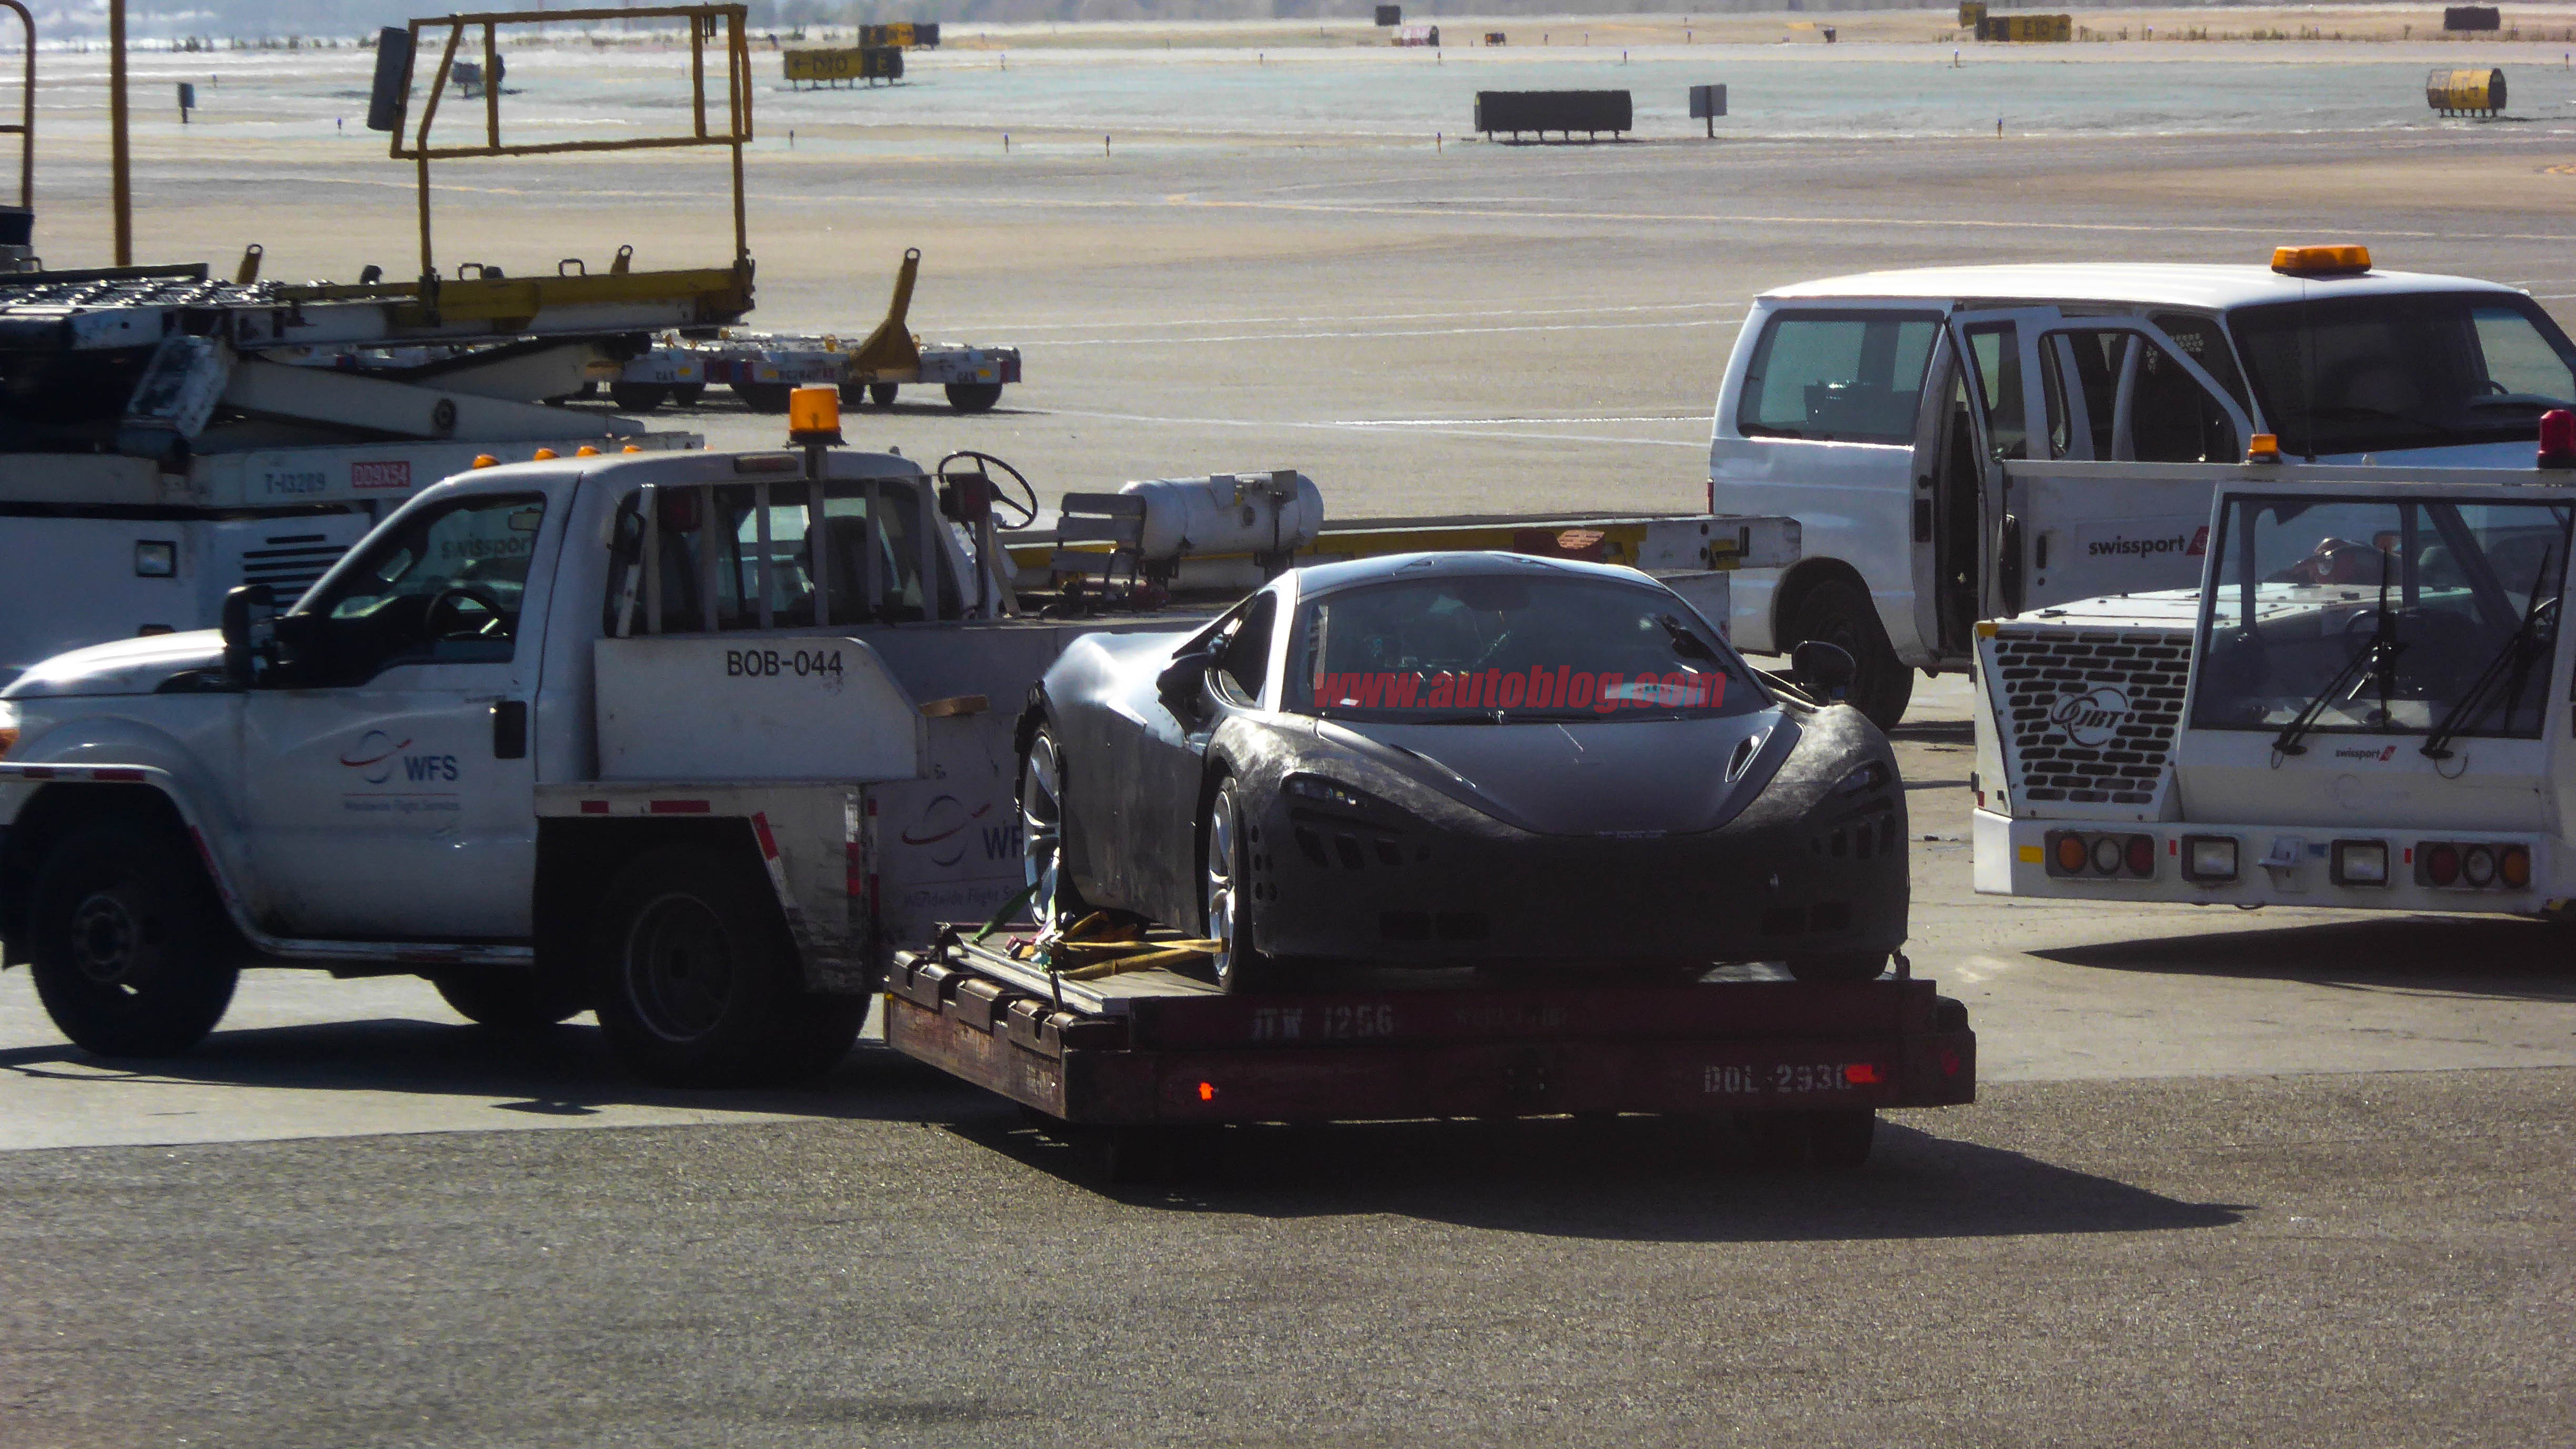 mclaren 650s replacement spotted at lax and in spain - autoblog